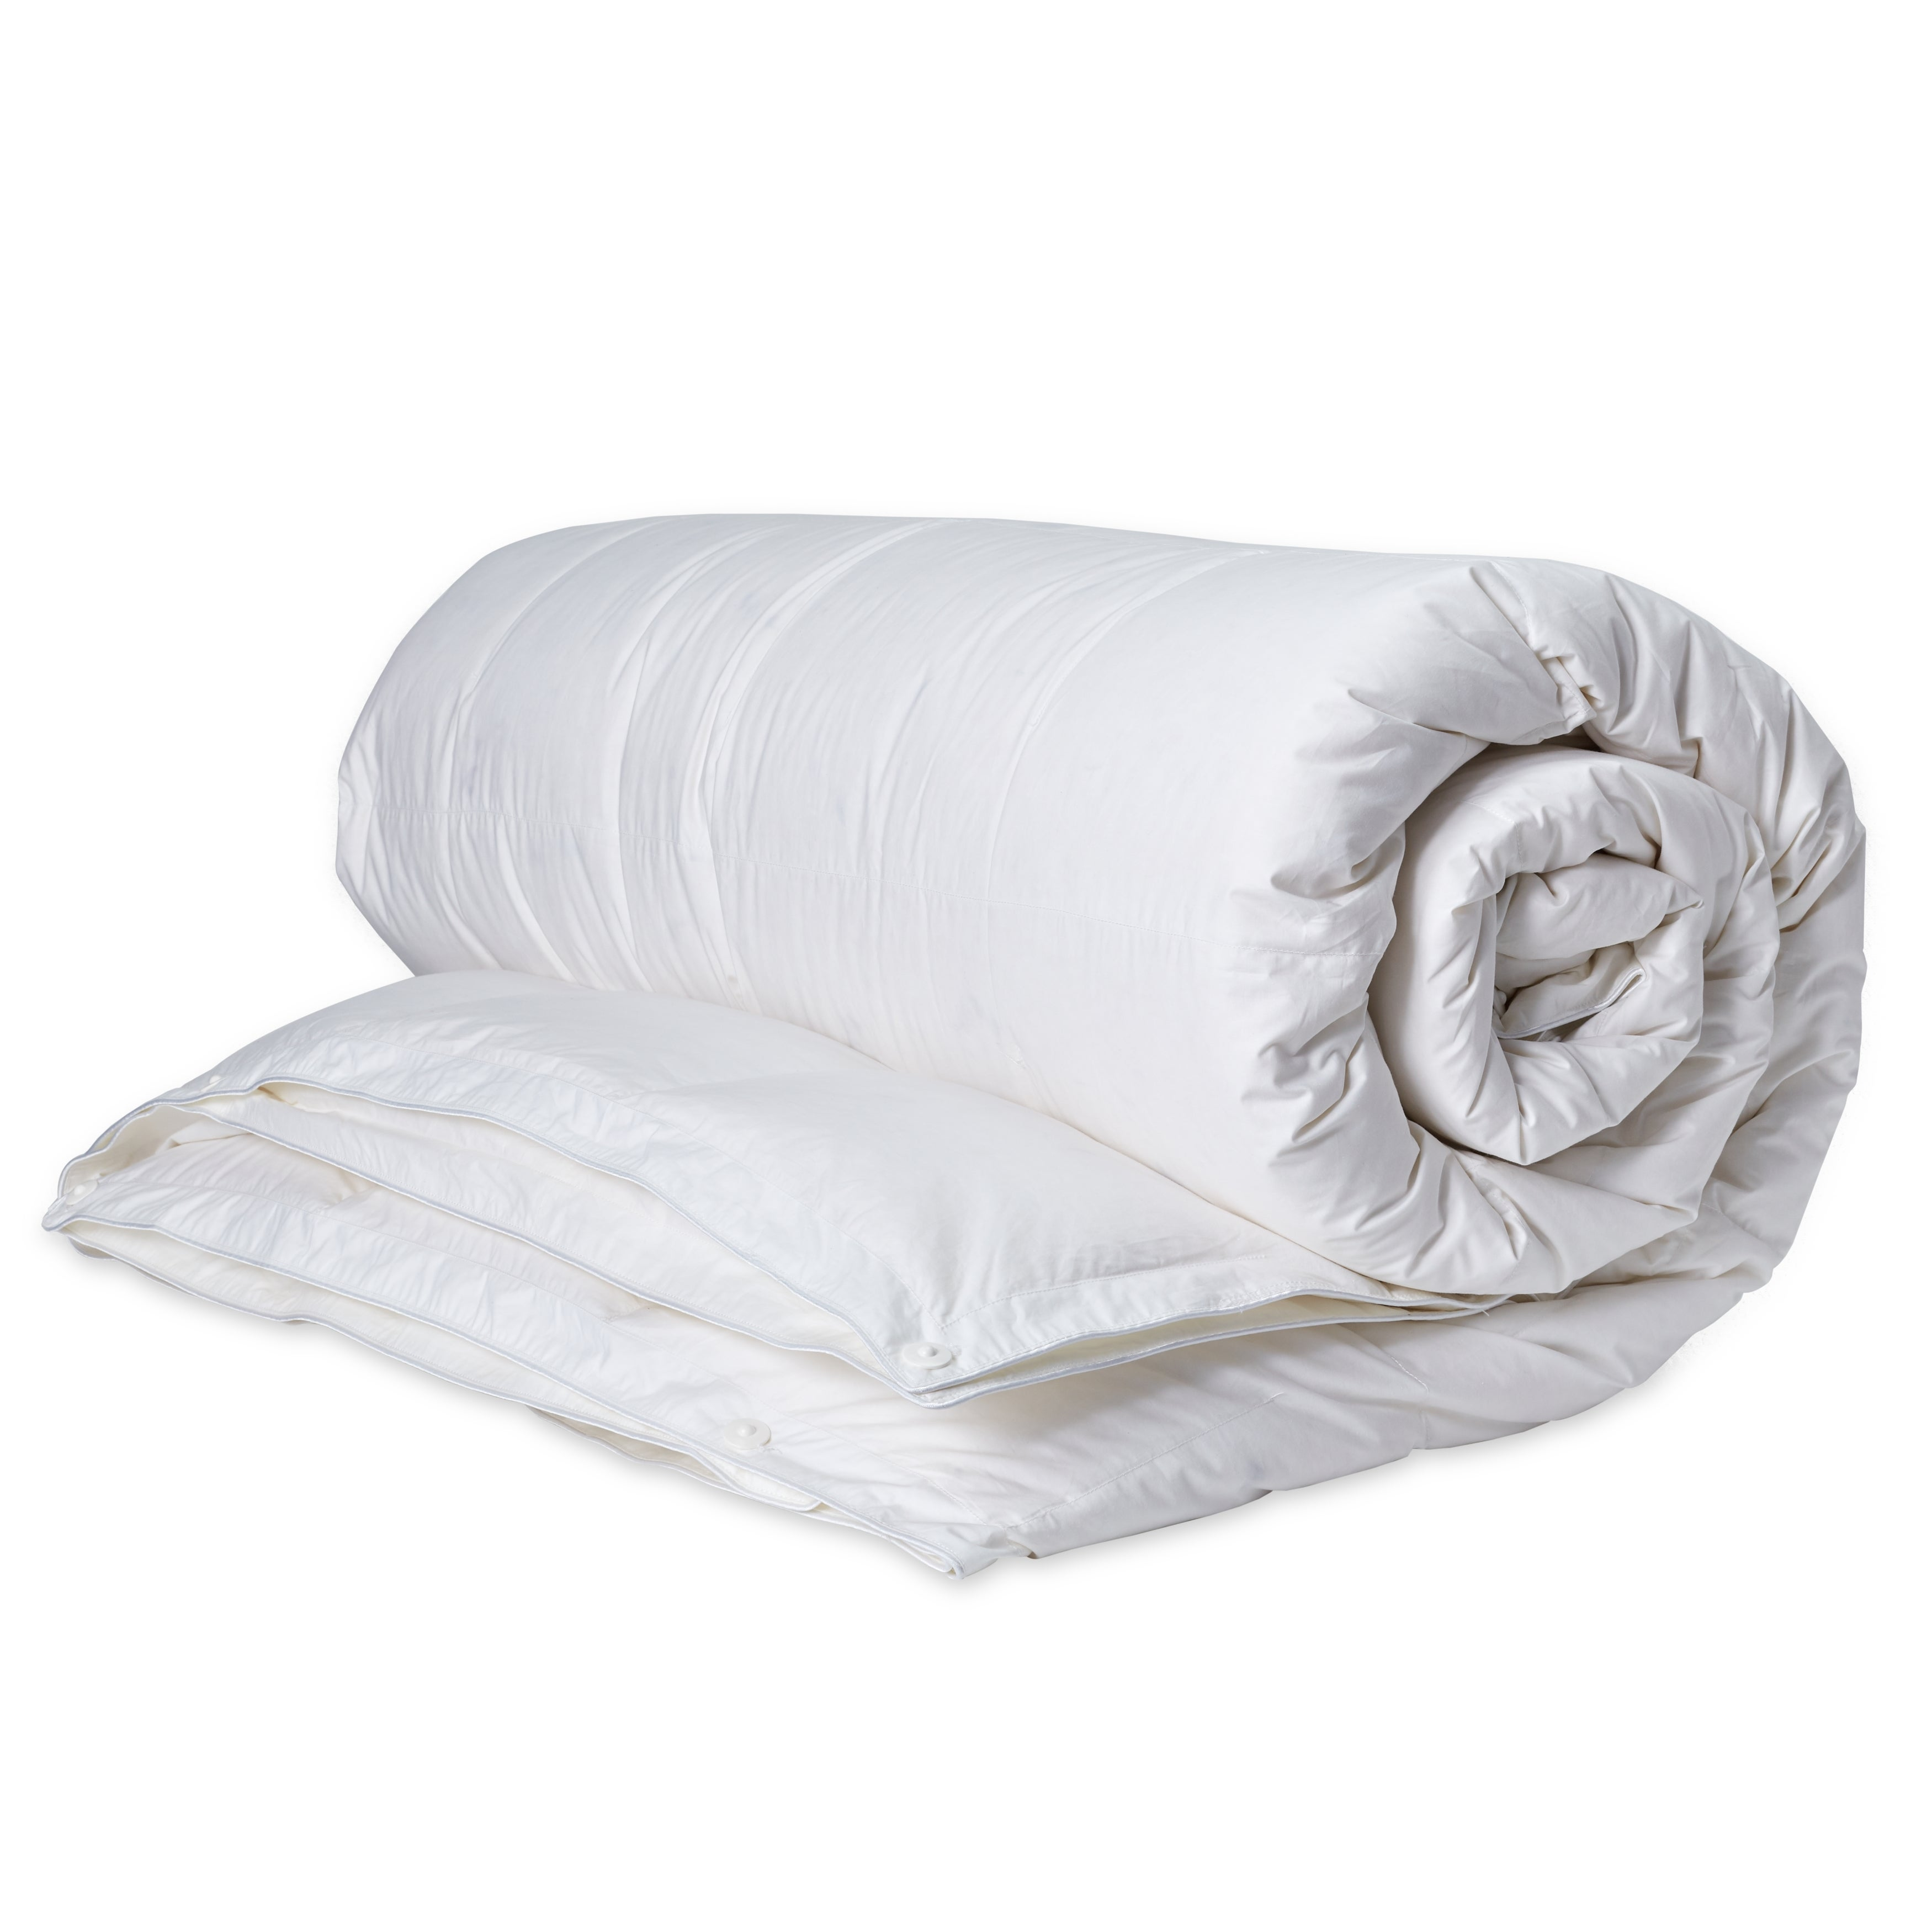 goose we pure pin down luxury duvets comforter provide hungarian percent duvet